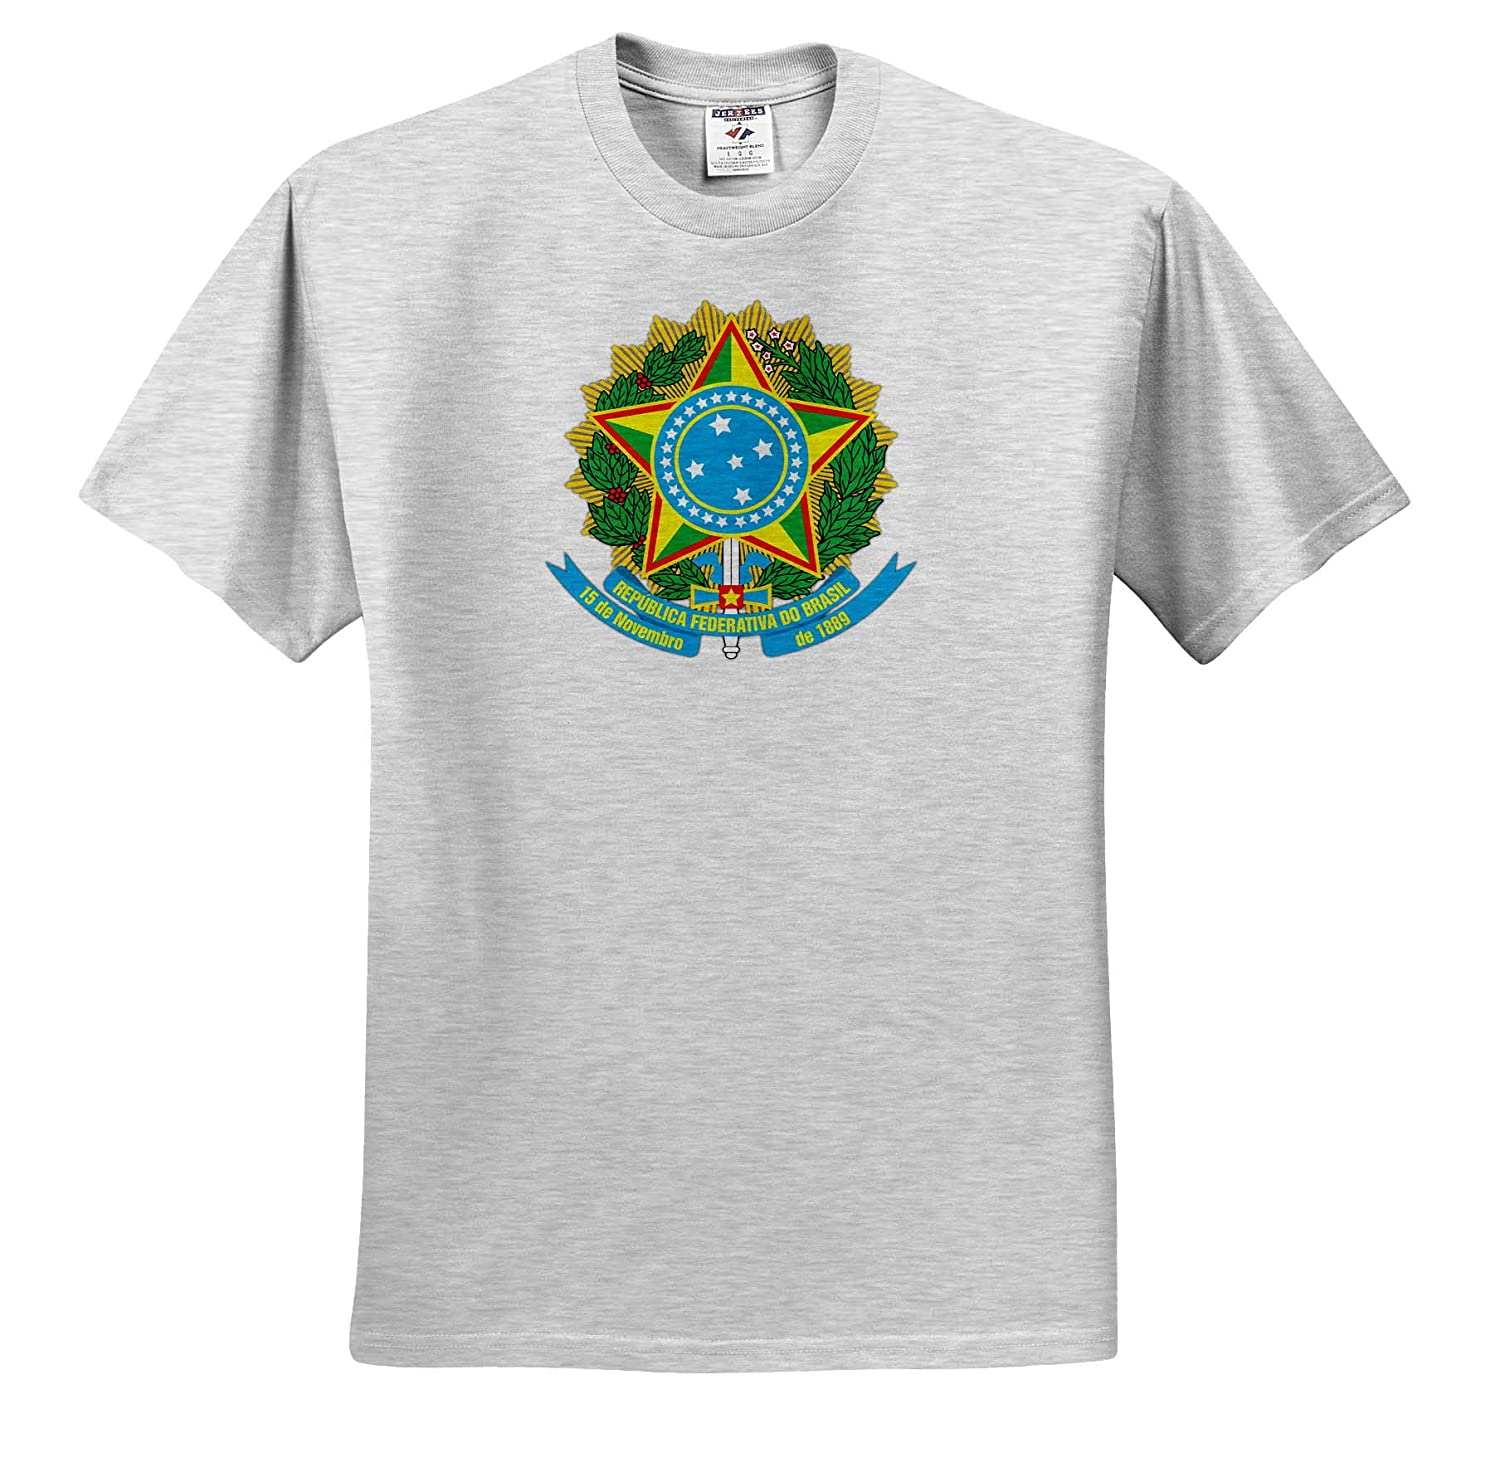 Adult T-Shirt XL ts/_319541 3dRose Carsten Reisinger Illustrations Brazil Coat of Arms National Symbol Icon